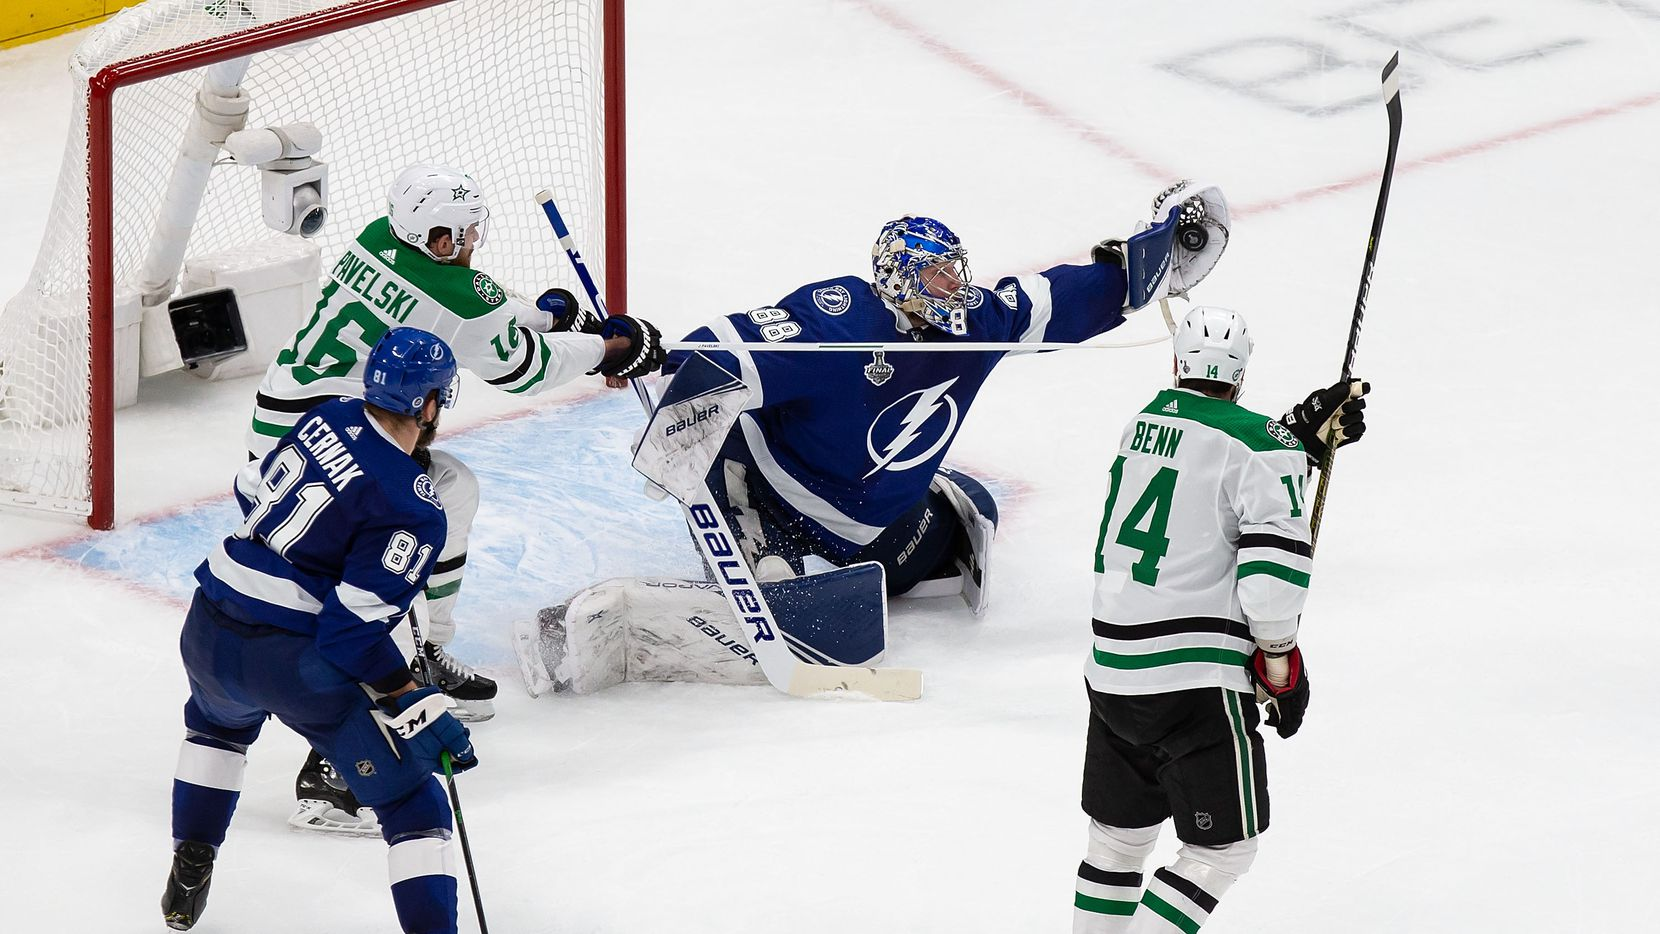 Joe Pavelski (16) and Jamie Benn (14) of the Dallas Stars attack the net as goaltender Andrei Vasilevskiy (88) of the Tampa Bay Lightning makes a save during Game Two of the Stanley Cup Final at Rogers Place in Edmonton, Alberta, Canada on Monday, September 21, 2020.